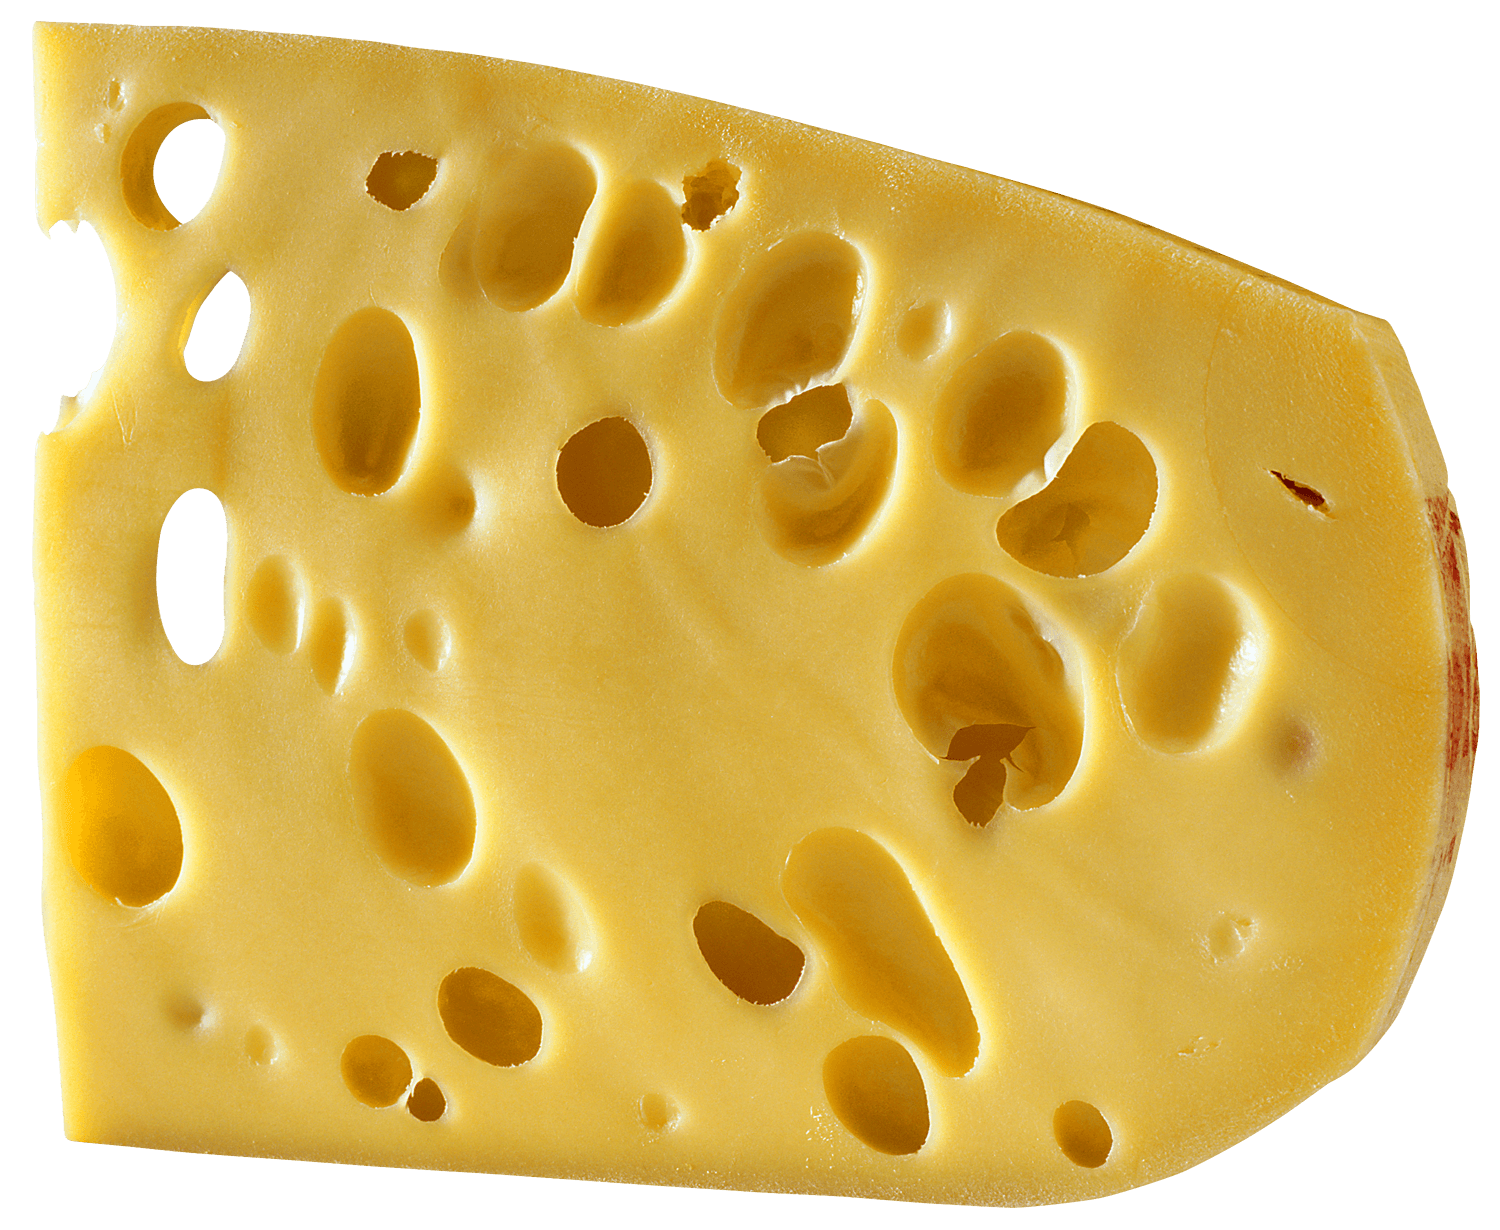 Gruyere photo slice png. Cheese clipart transparent background